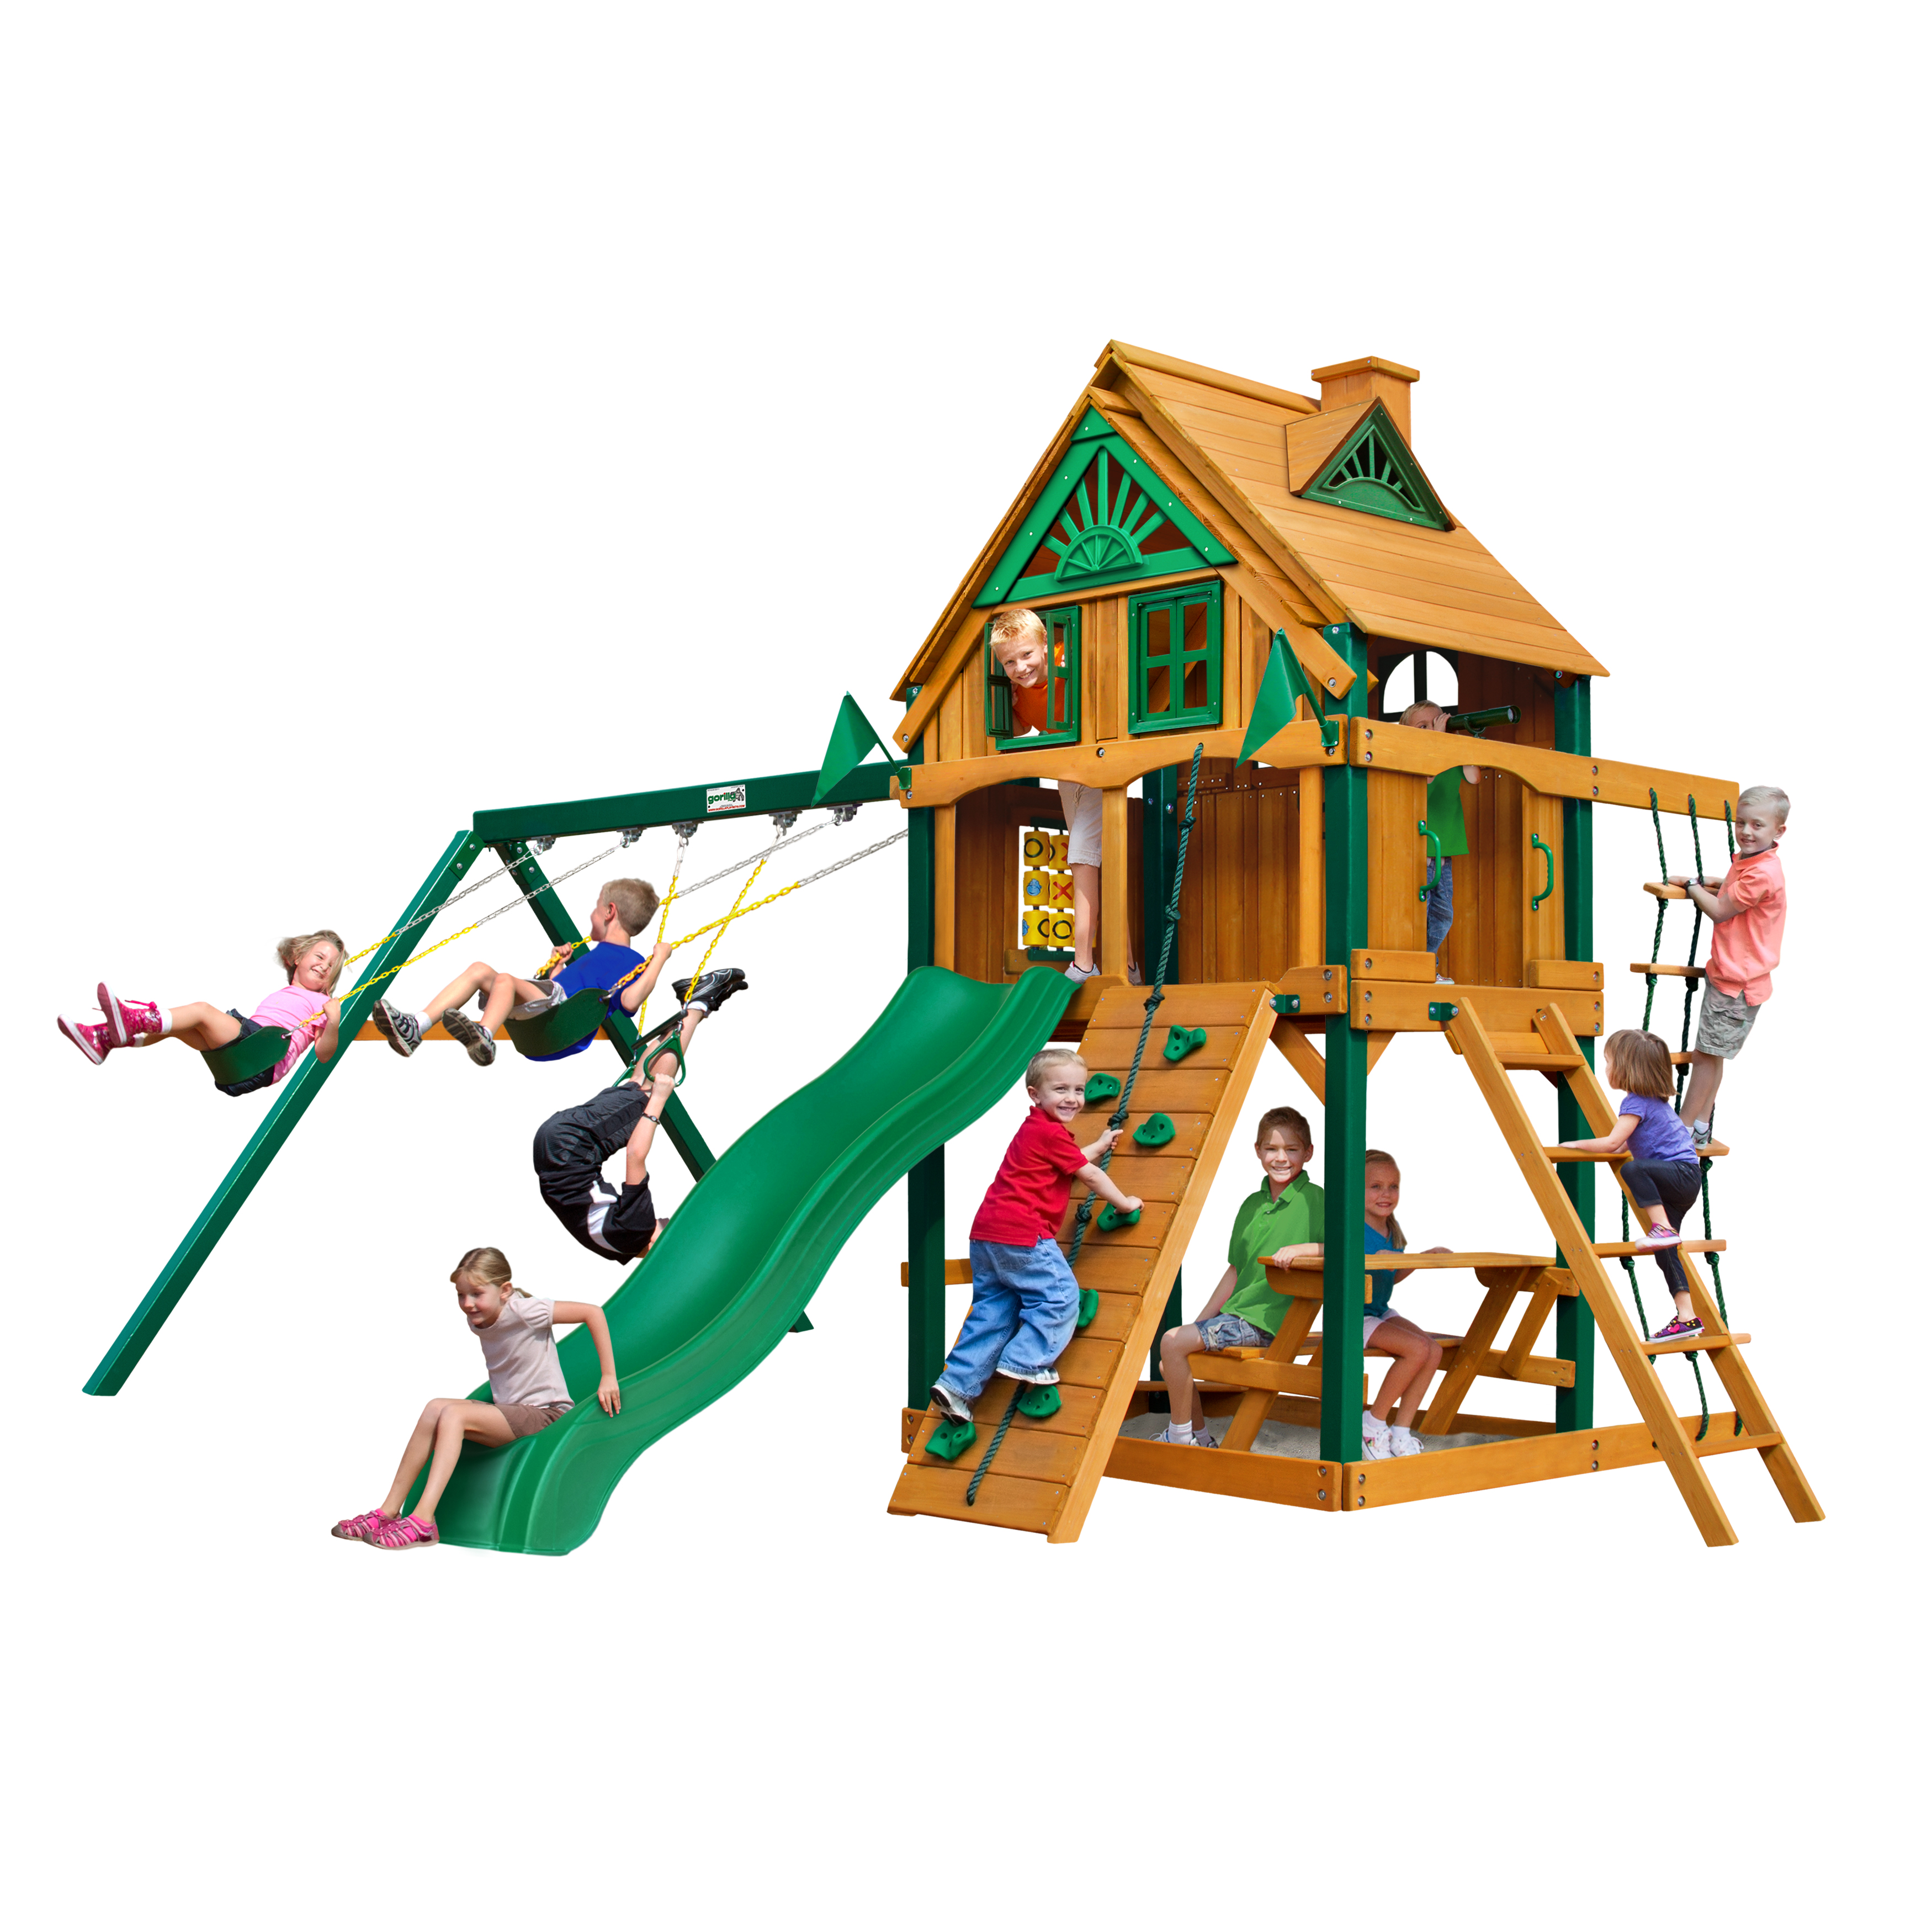 Chateau Treehouse Cedar Swing Set with Fort Add-On & Timber Shield Posts